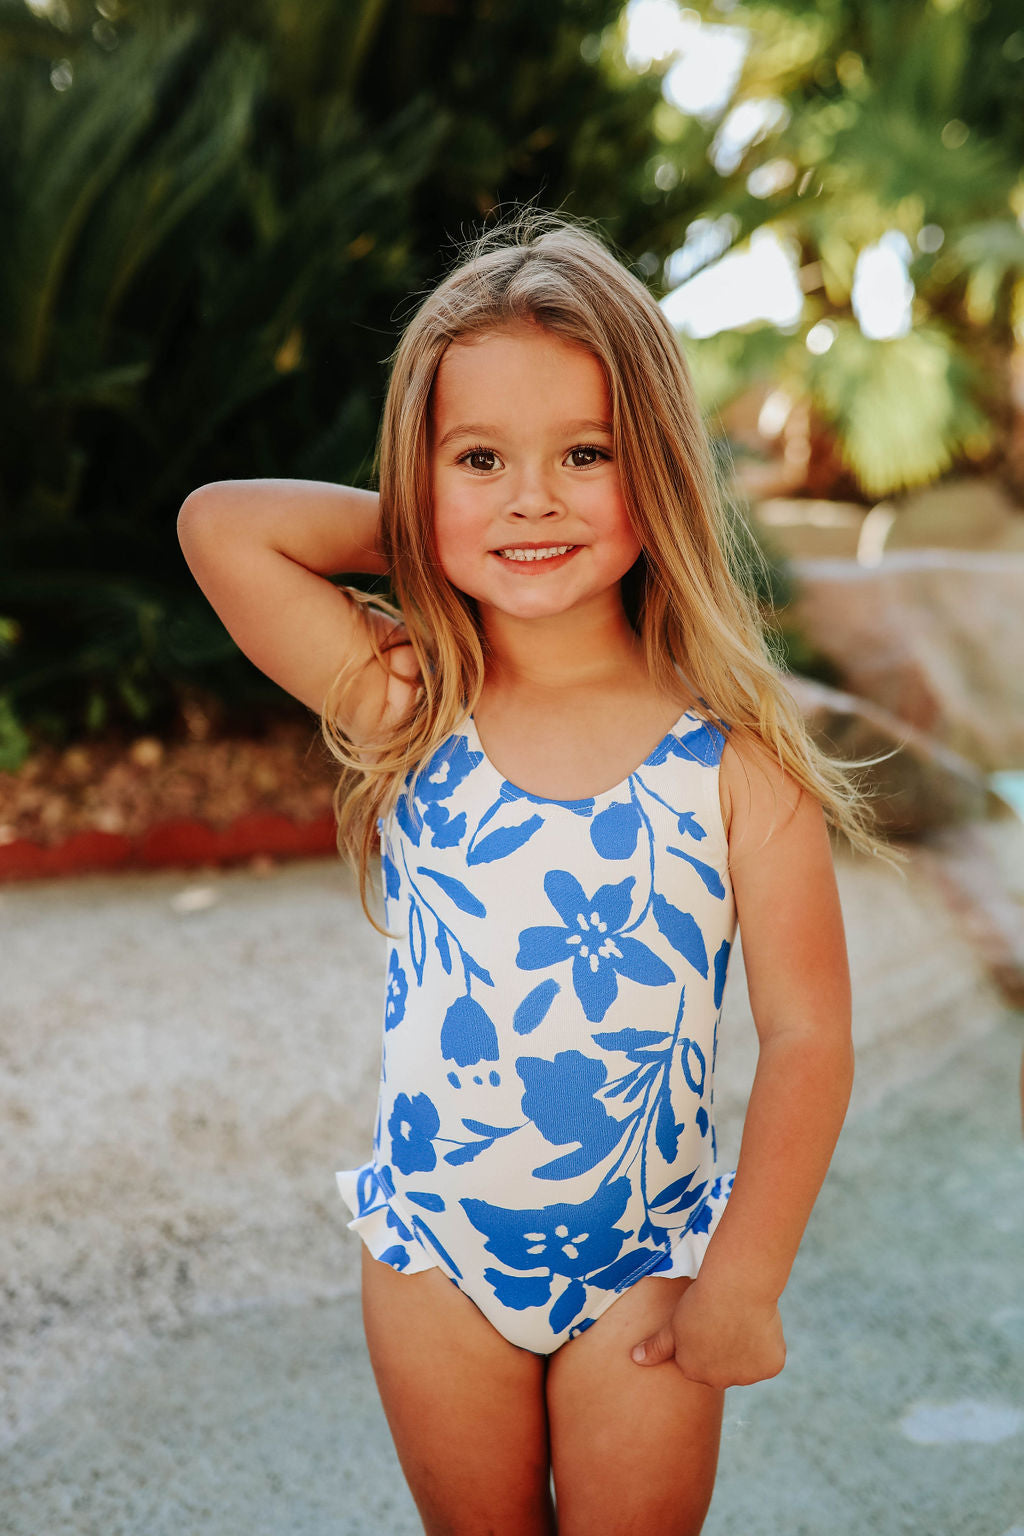 PINK DESERT GIRLS MINI RUFFLE LEG SCOOP ONE PIECE SWIMSUIT IN BLUE FLORAL